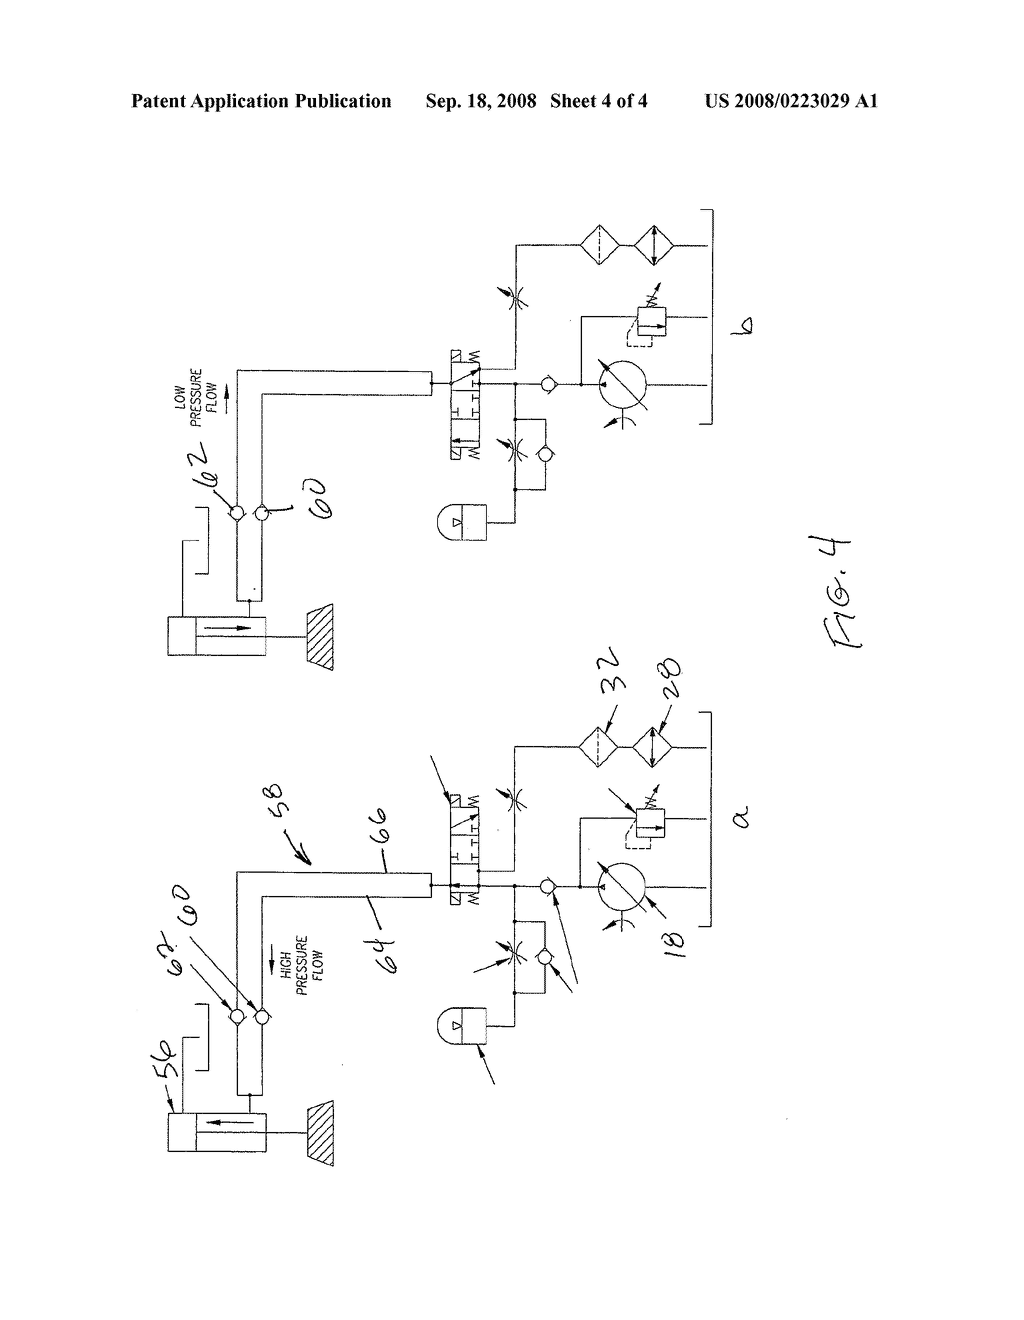 Oil Cooling Circuit For Continuosly Reciprocating Hydraulic Cylinder Basic Cylinders Diagram Schematic And Image 05